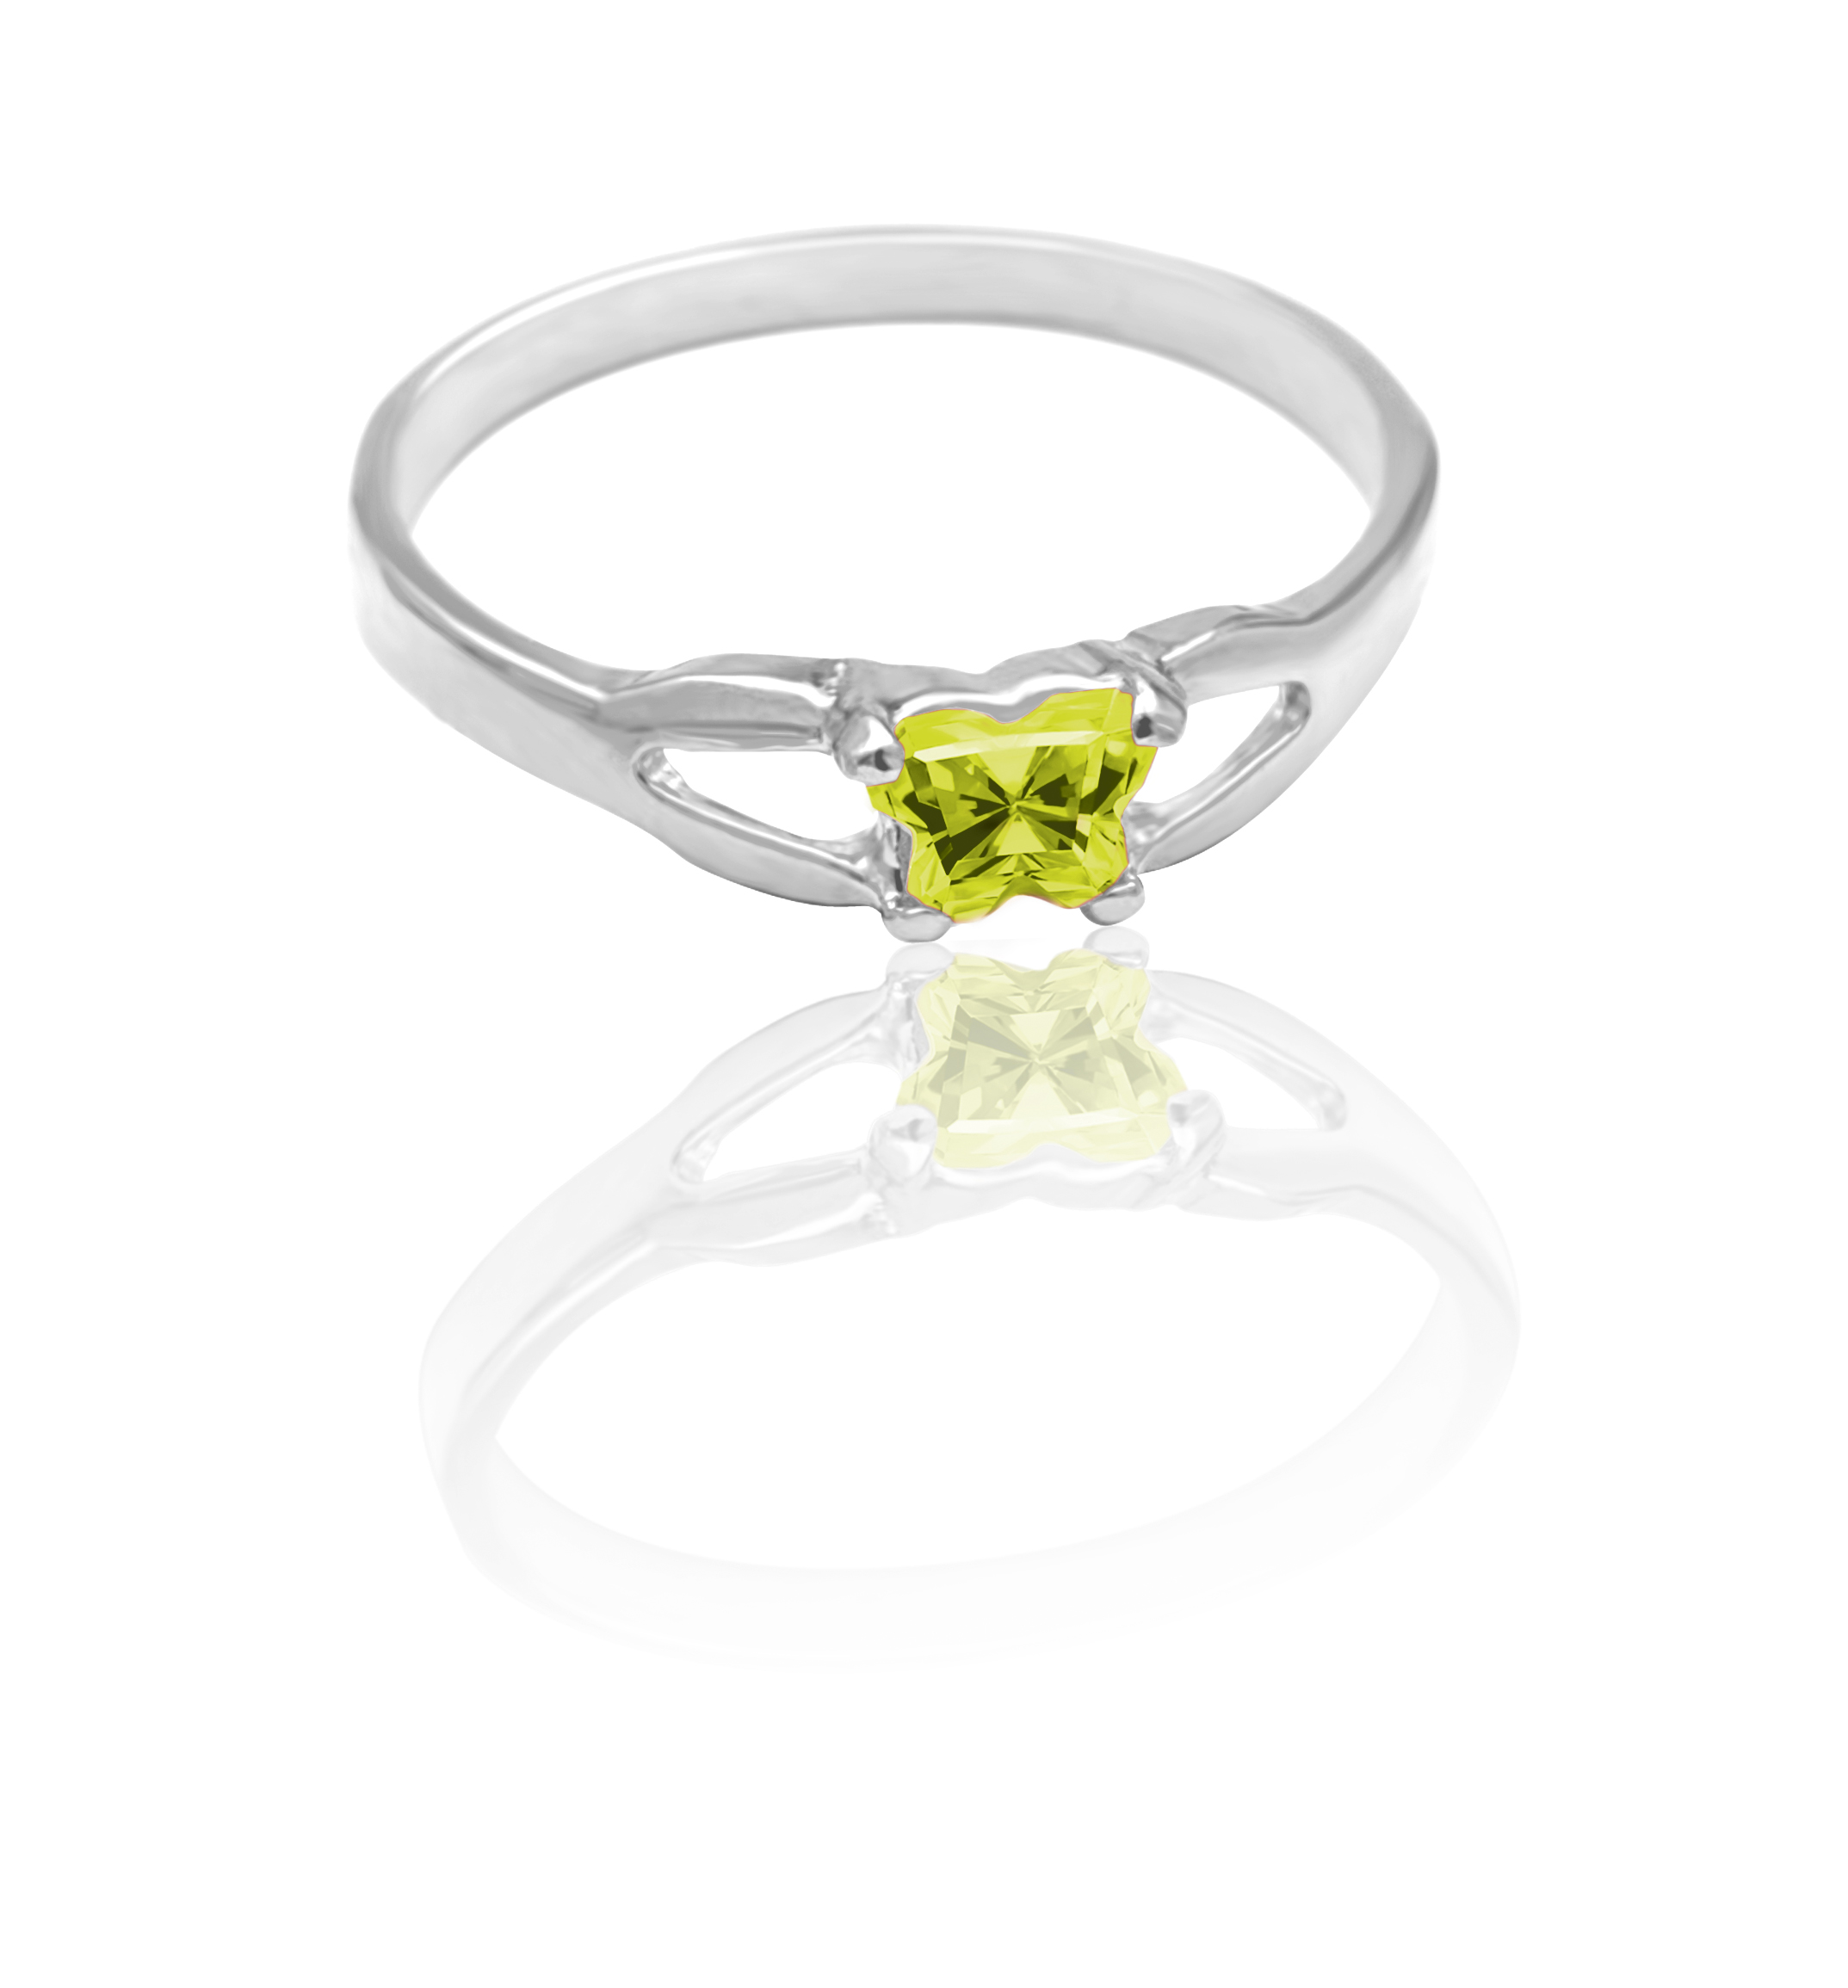 children ring in sterling silver with lime green cubic zirconia (month of August)*